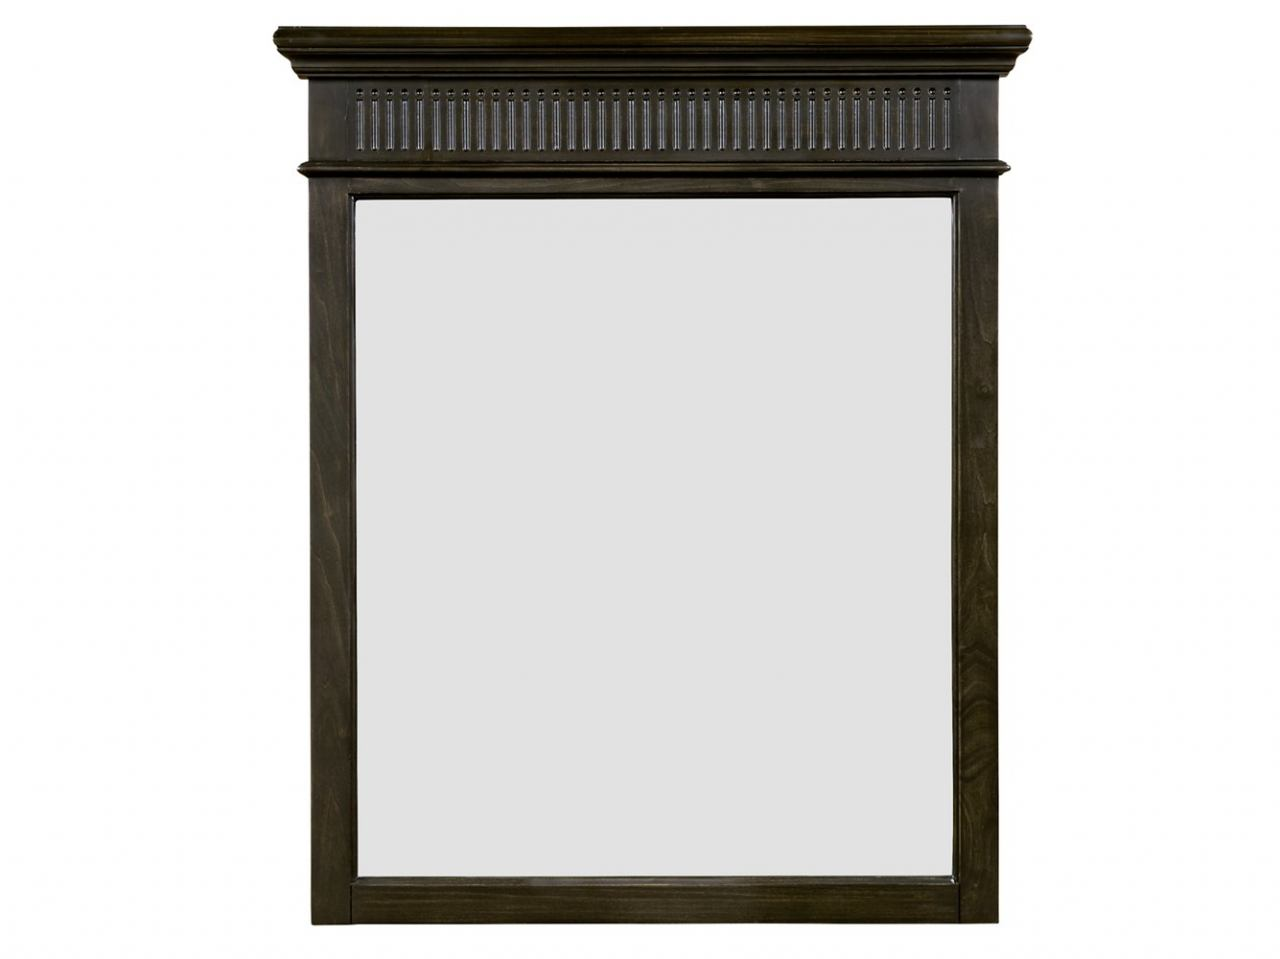 Stone & Leigh Smiling Hill Dresser Mirror in Licorice 560-83-30